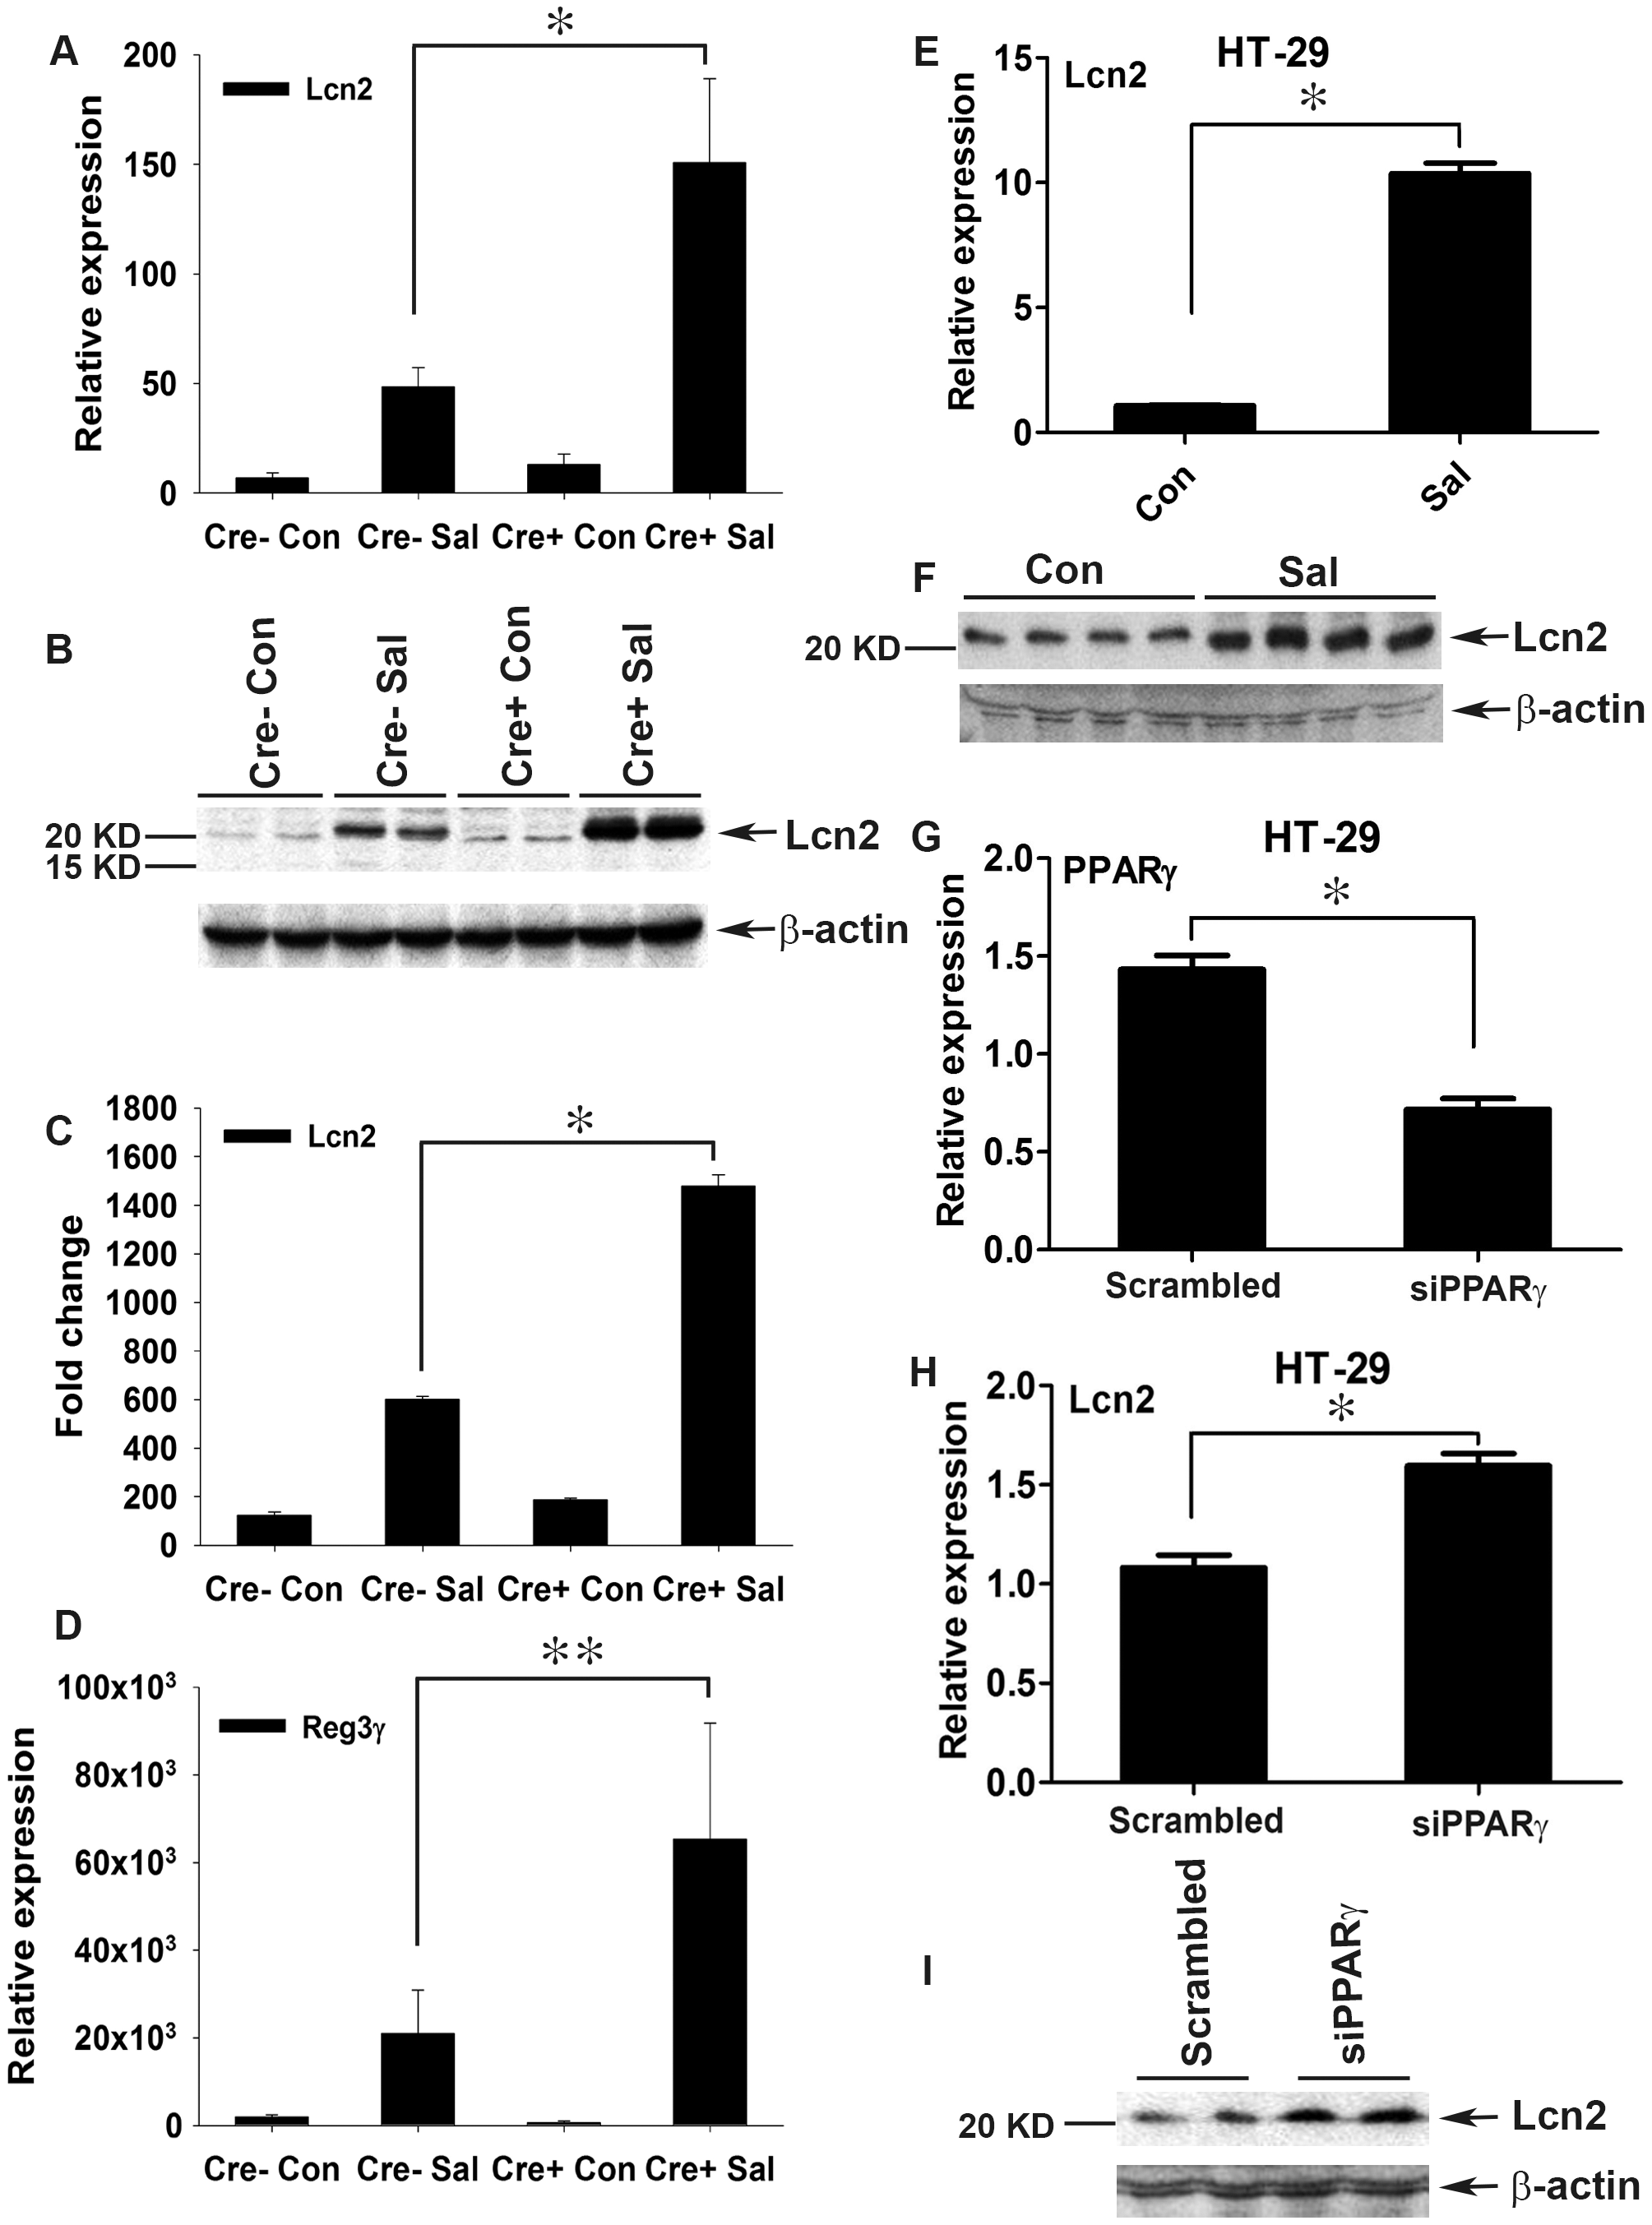 Colonic Lcn2 expression in PPARγVillinCre+ mice increases after <i>S.</i> Typhimurium challenge.